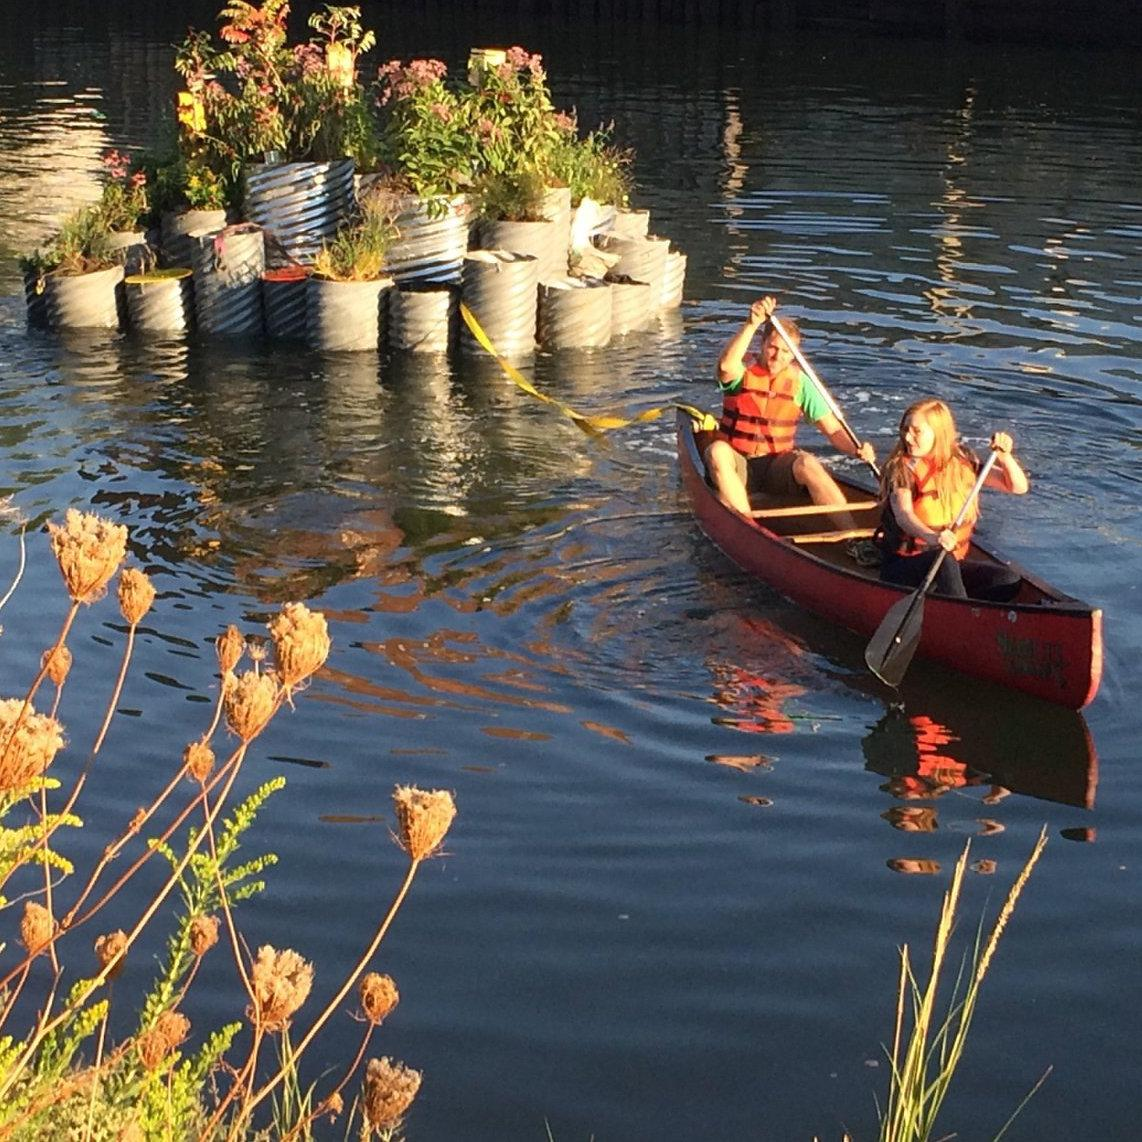 Floating #Garden Blooms On NYC's Most Toxic Waterway: http://t.co/mxoohwOj8a Awesome project @balmorilab! http://t.co/DzZYJGhdAo